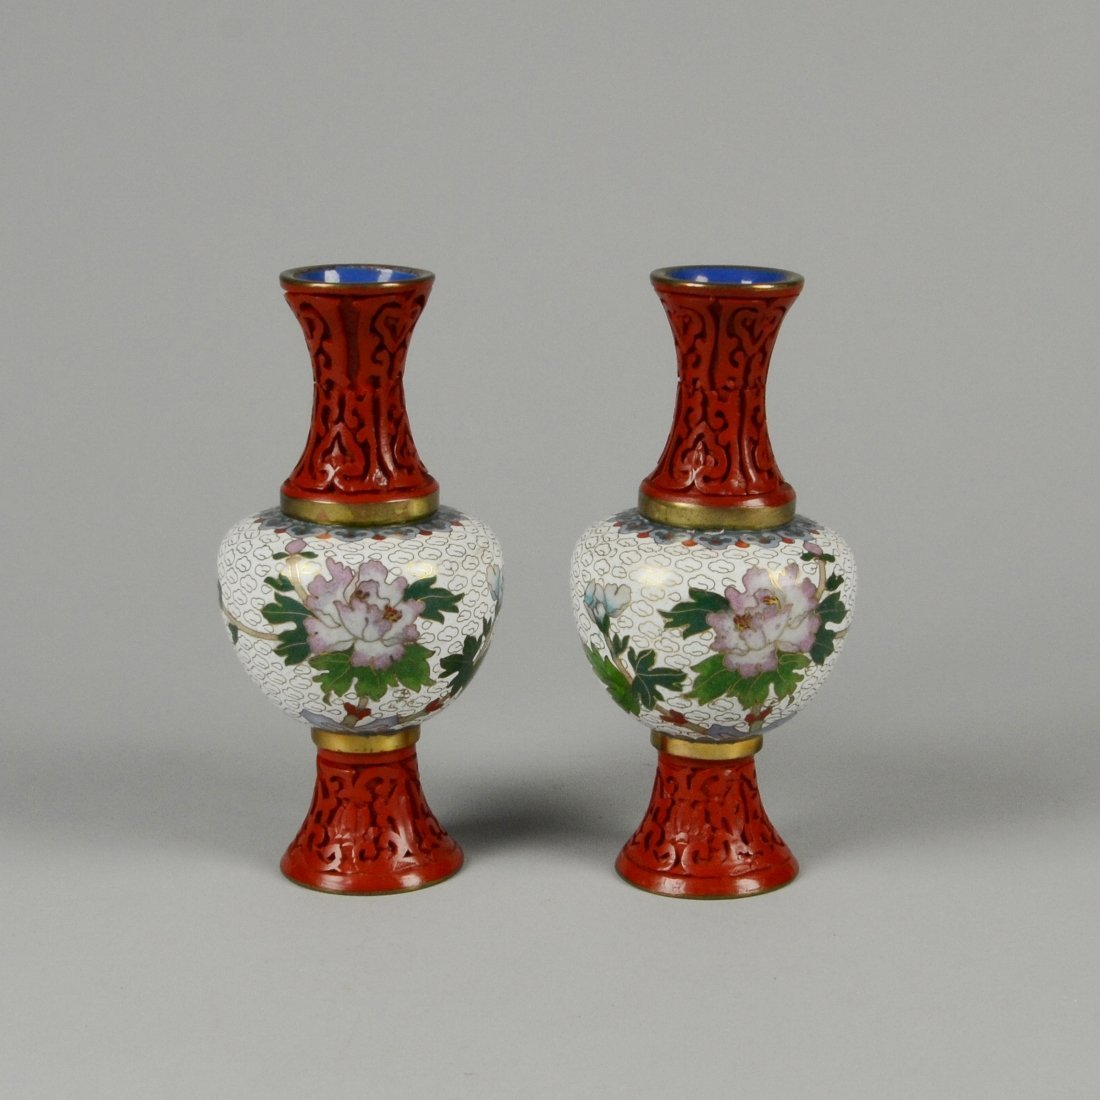 12: PAIR OF CINNABAR & CLOISONNÉ COMBINED VASES